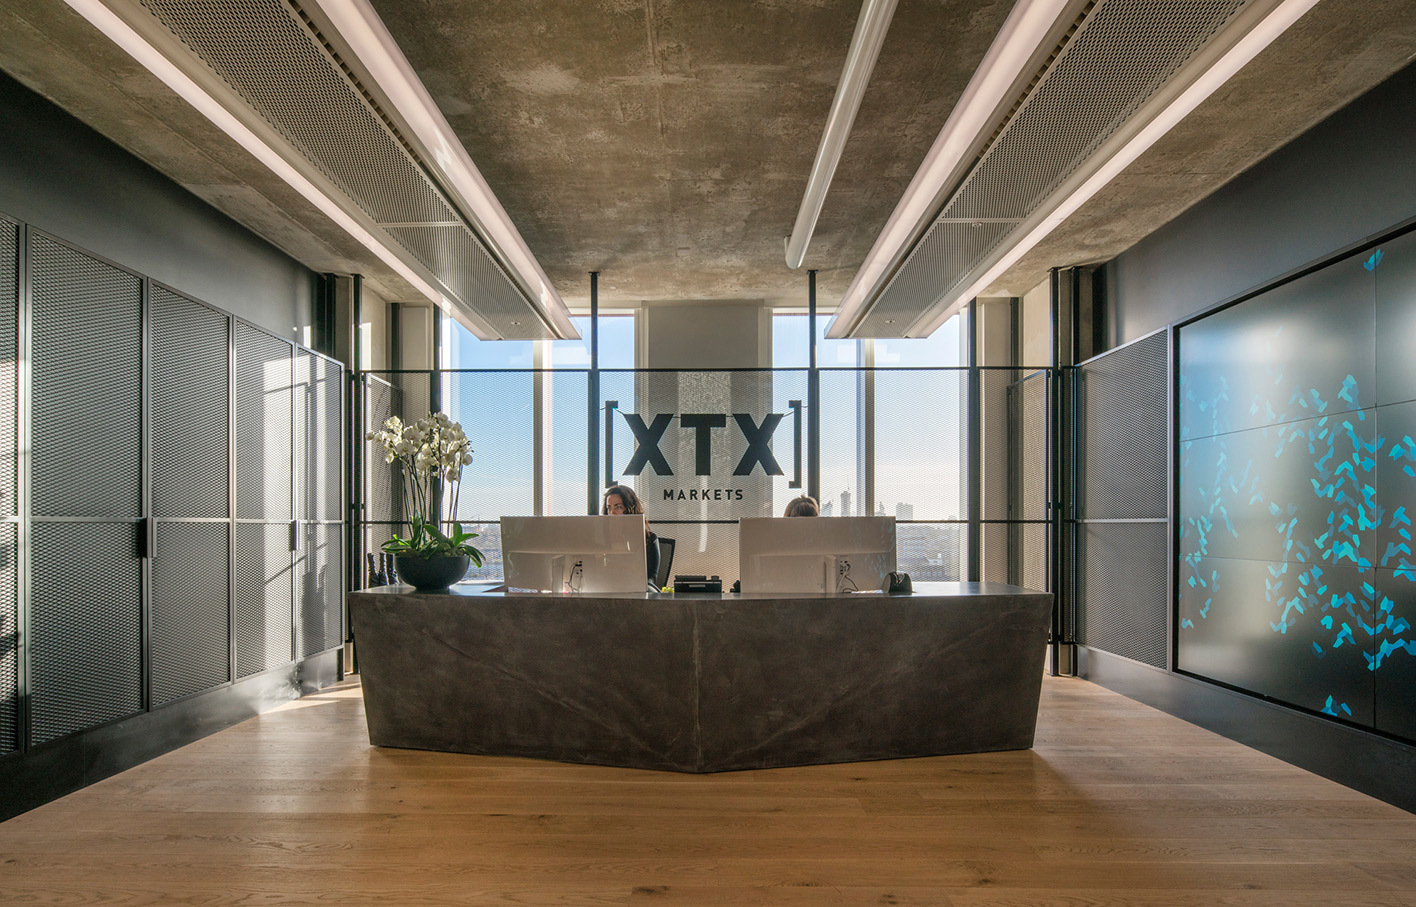 Aldworth James & Bond | XTX Markets — Reception desk and feature wall by AJ&B